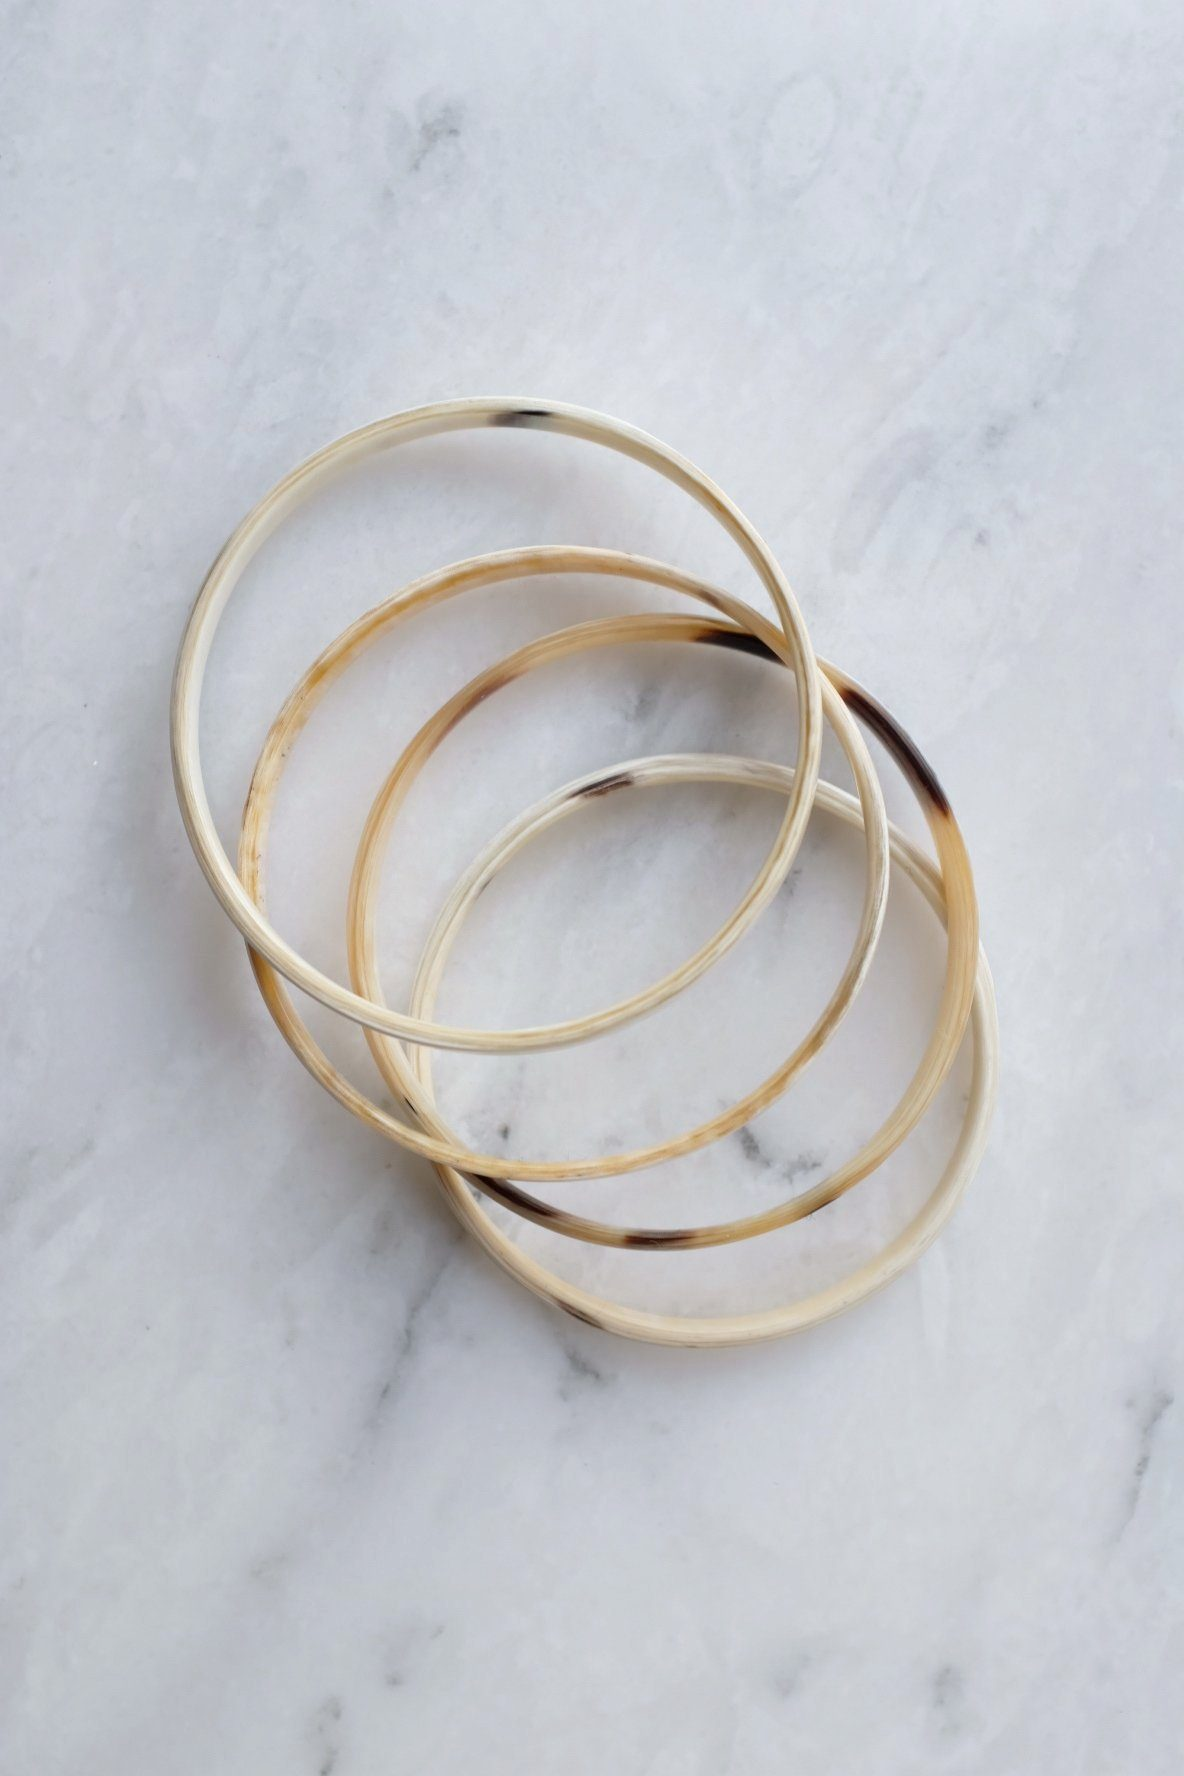 Sa Pa Minimal Genuine Buffalo Horn Bangle Bracelets, Set of 4 - Handcrafted & Unique Buffalo Horn Jewelry